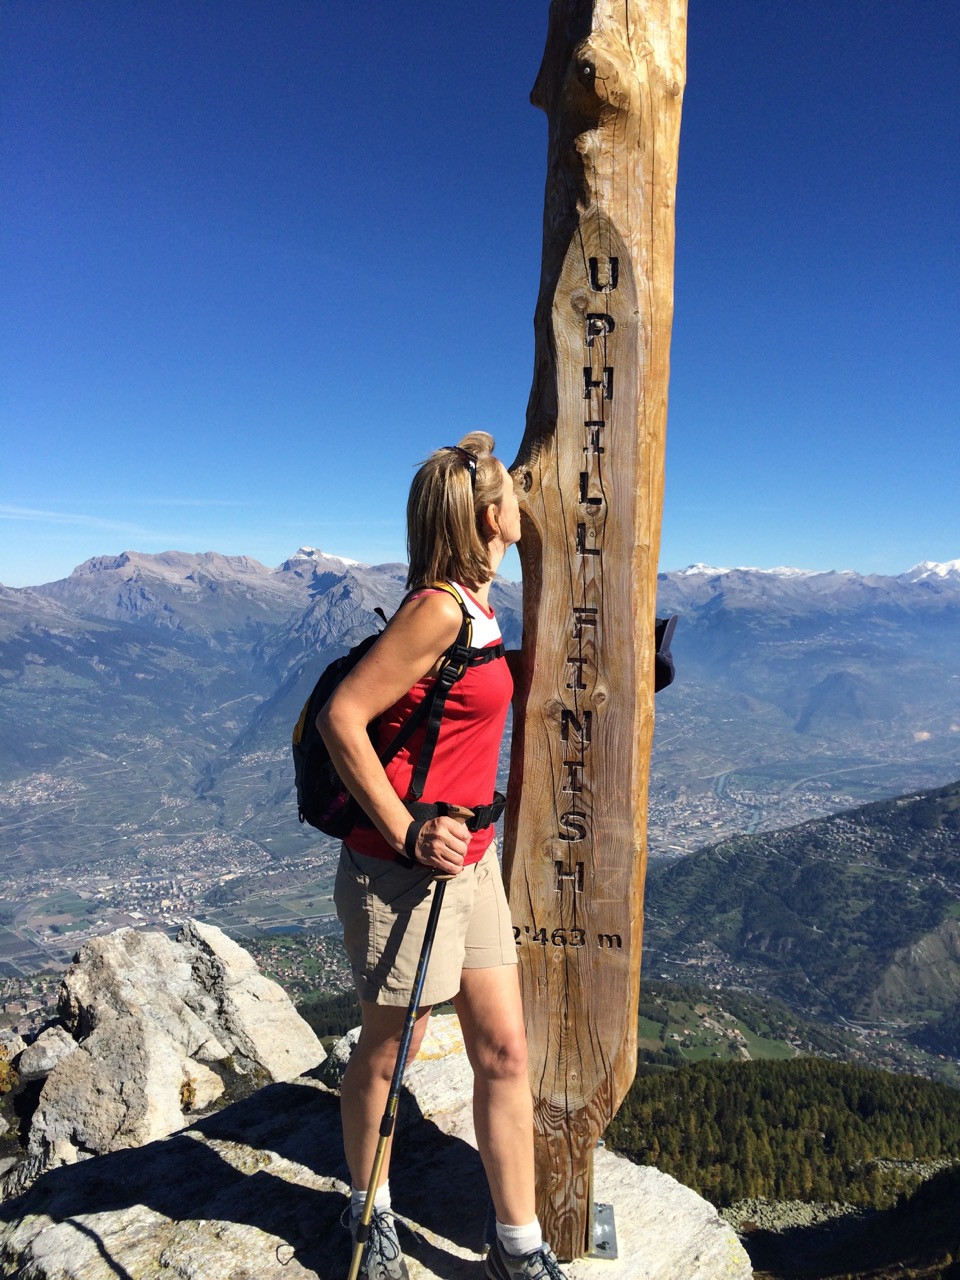 Yoga Teacher Yogawithvickib hiking to top of Swiss Mountain